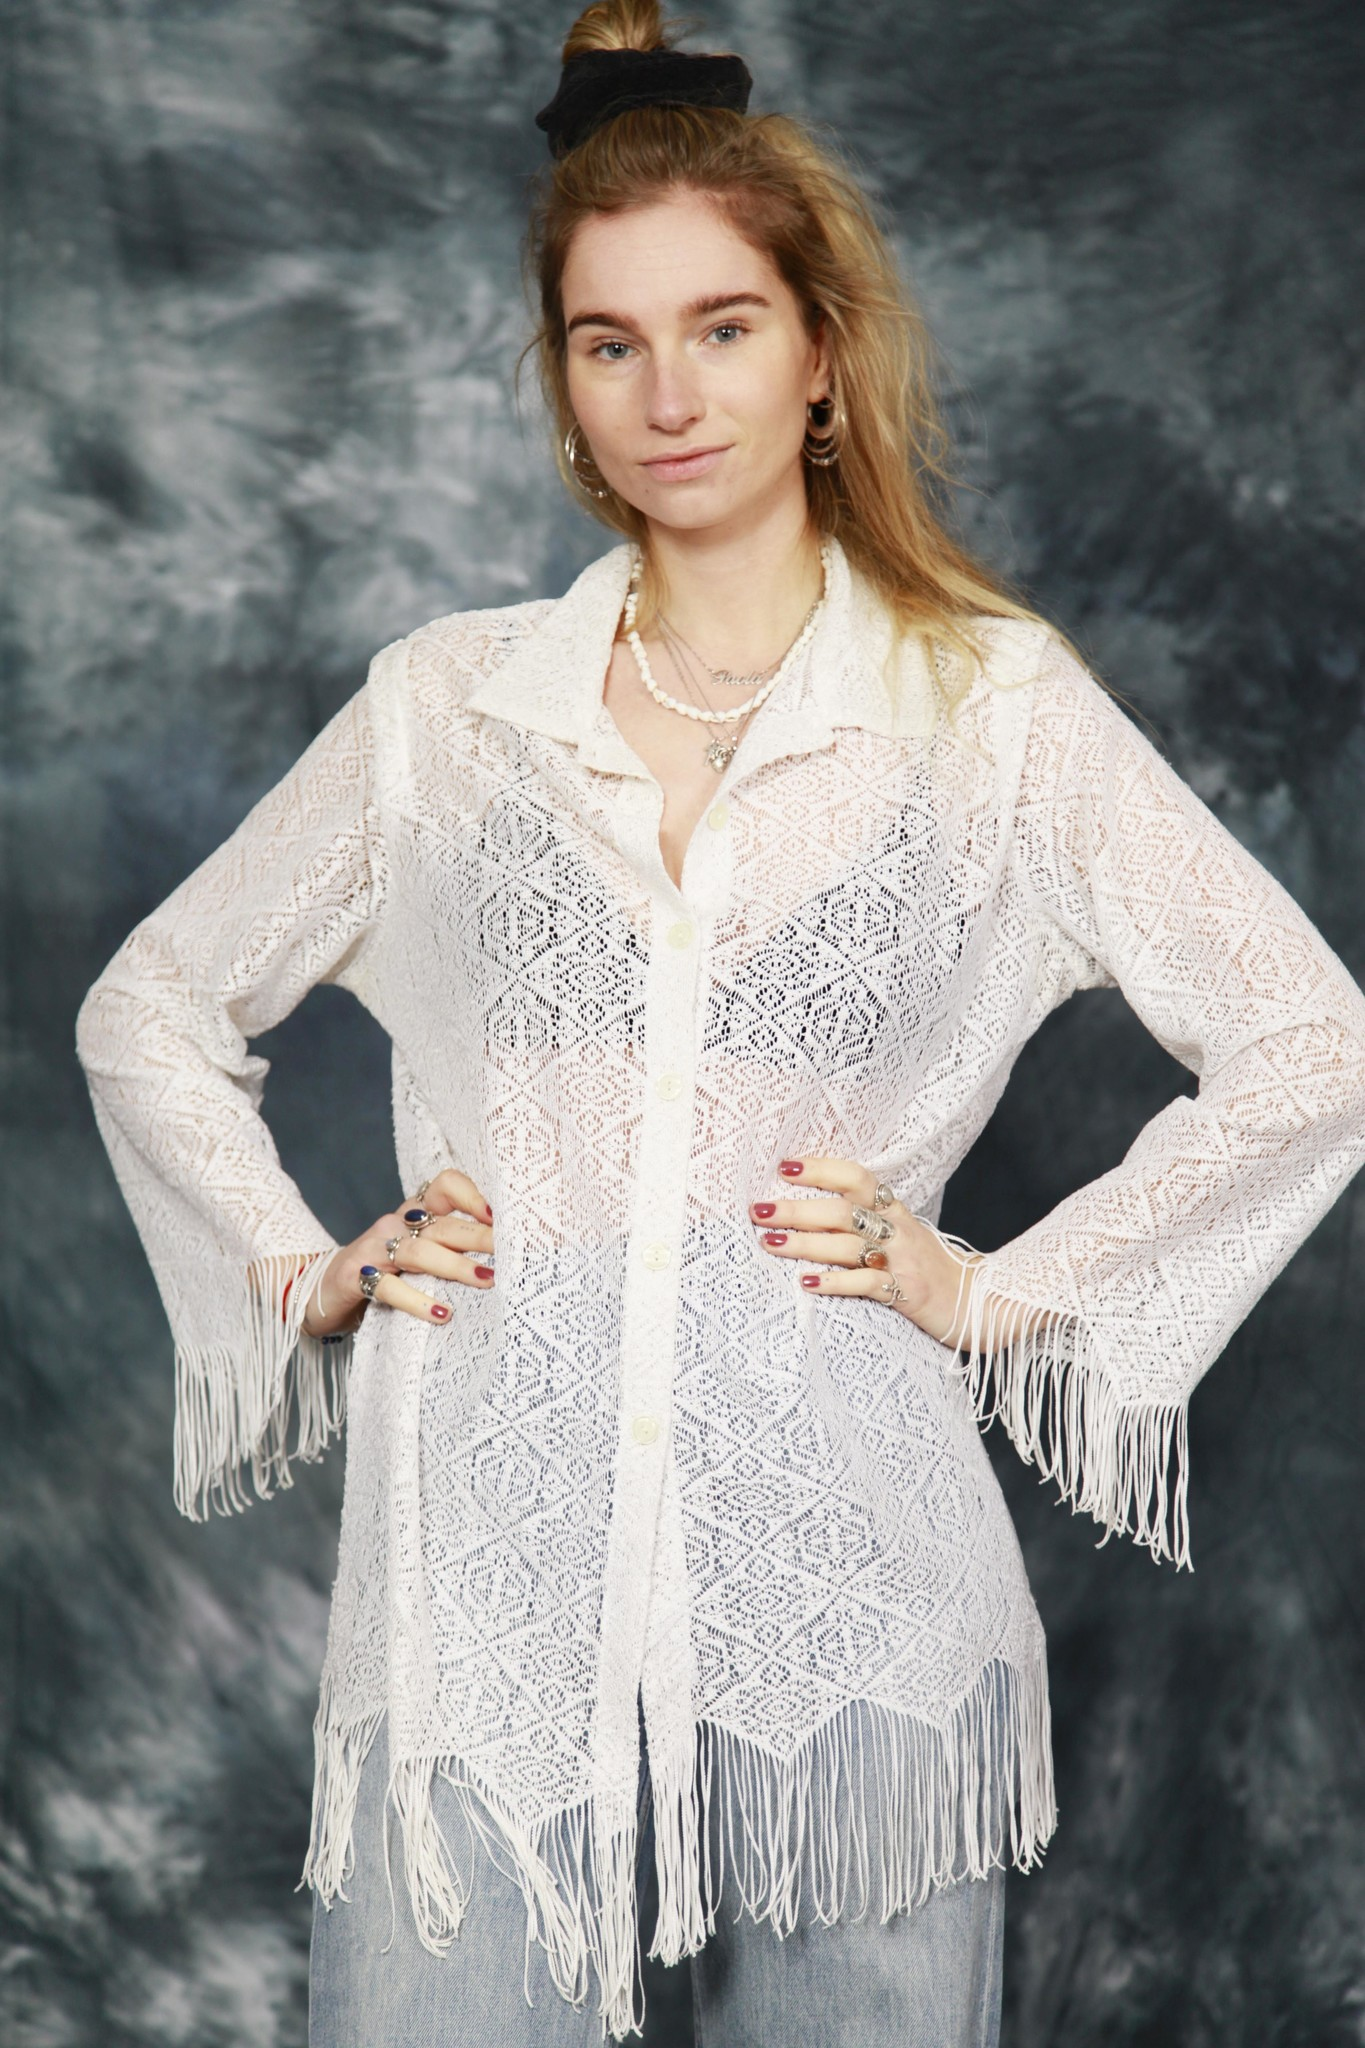 White 80s lace top